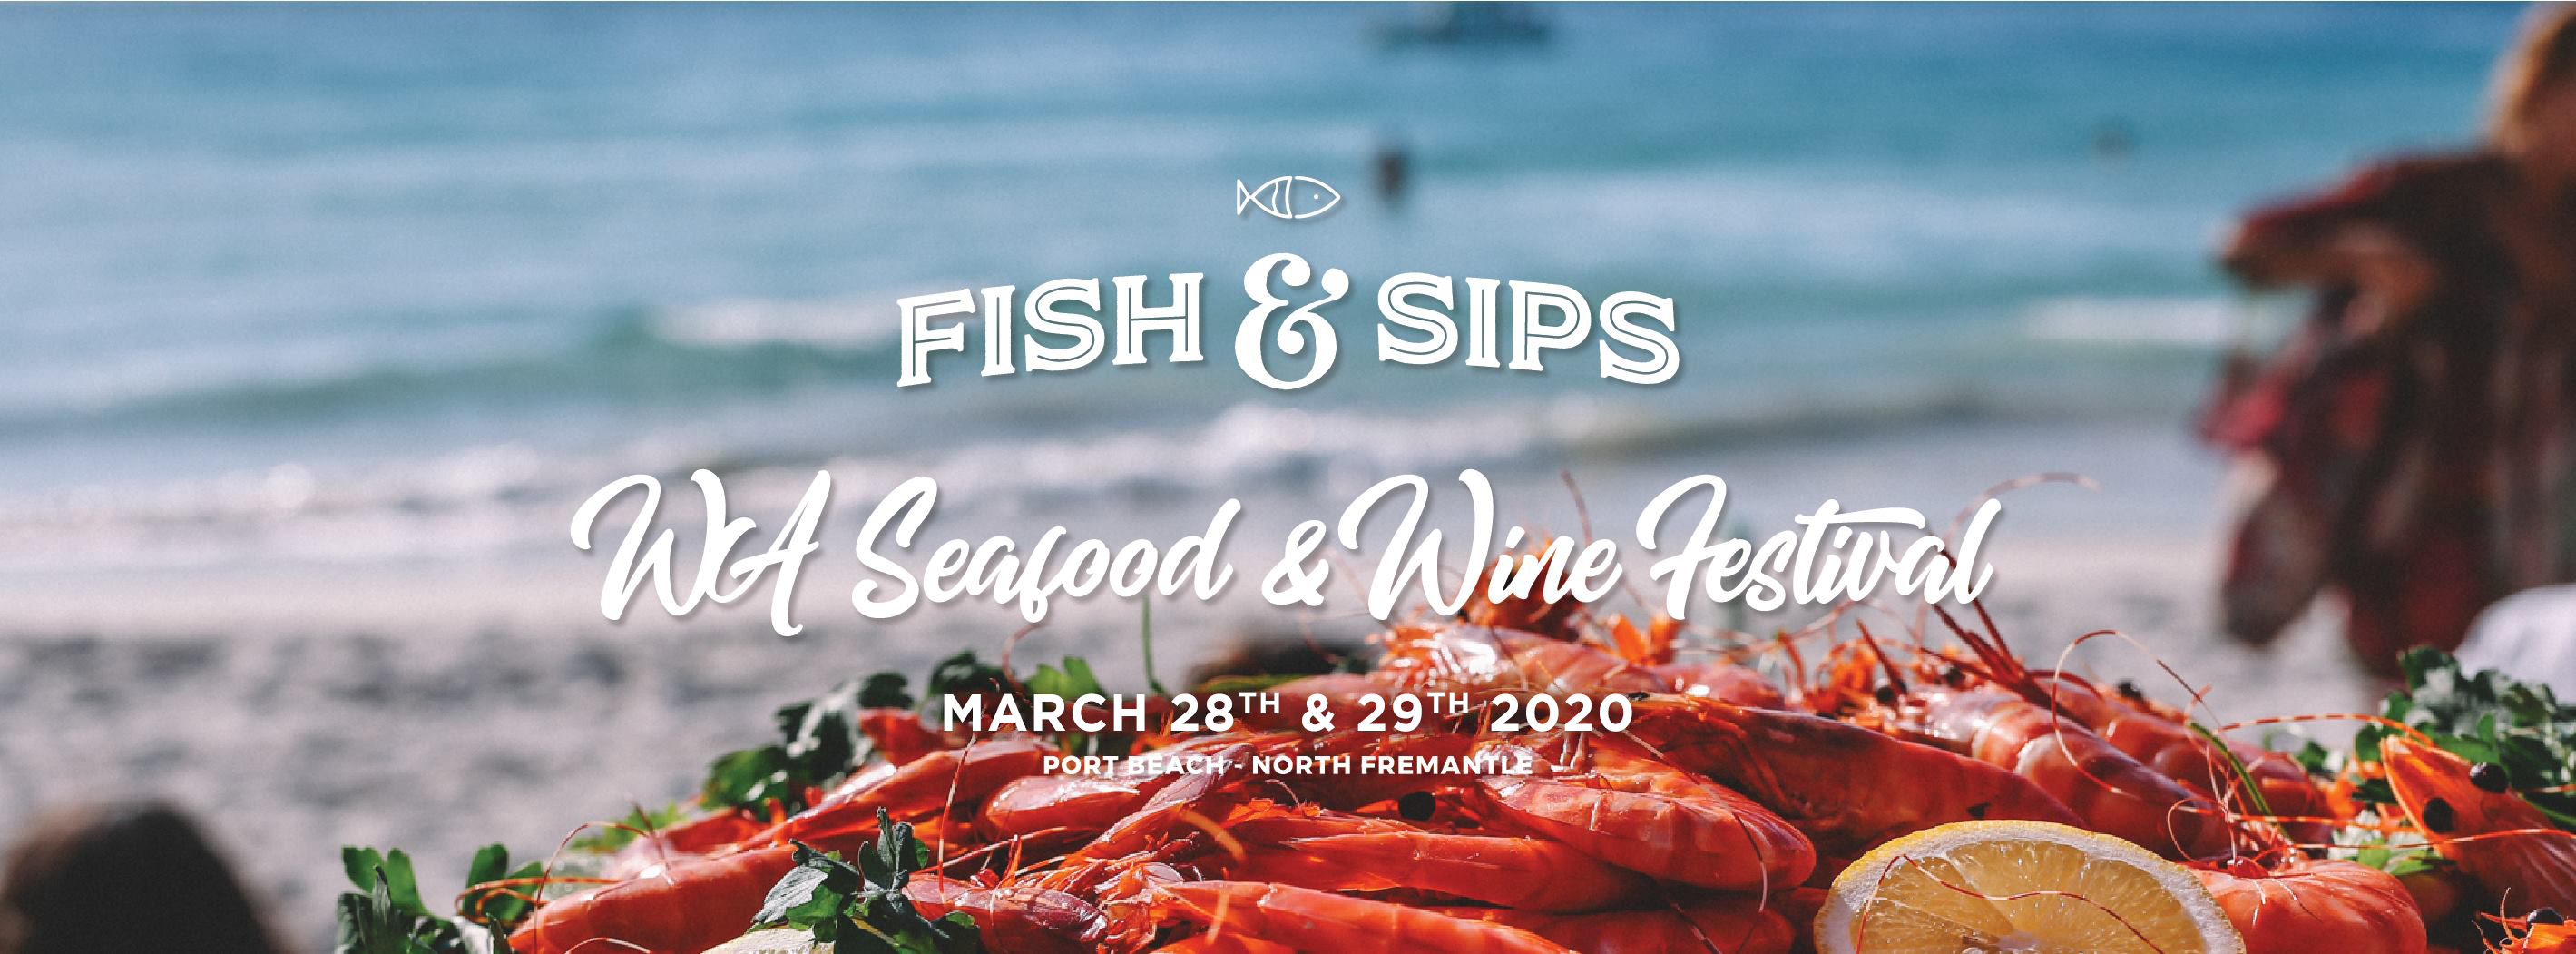 Tickets for Fish and Sips Festival - Weekend Pass in North Fremantle from Ticketbooth